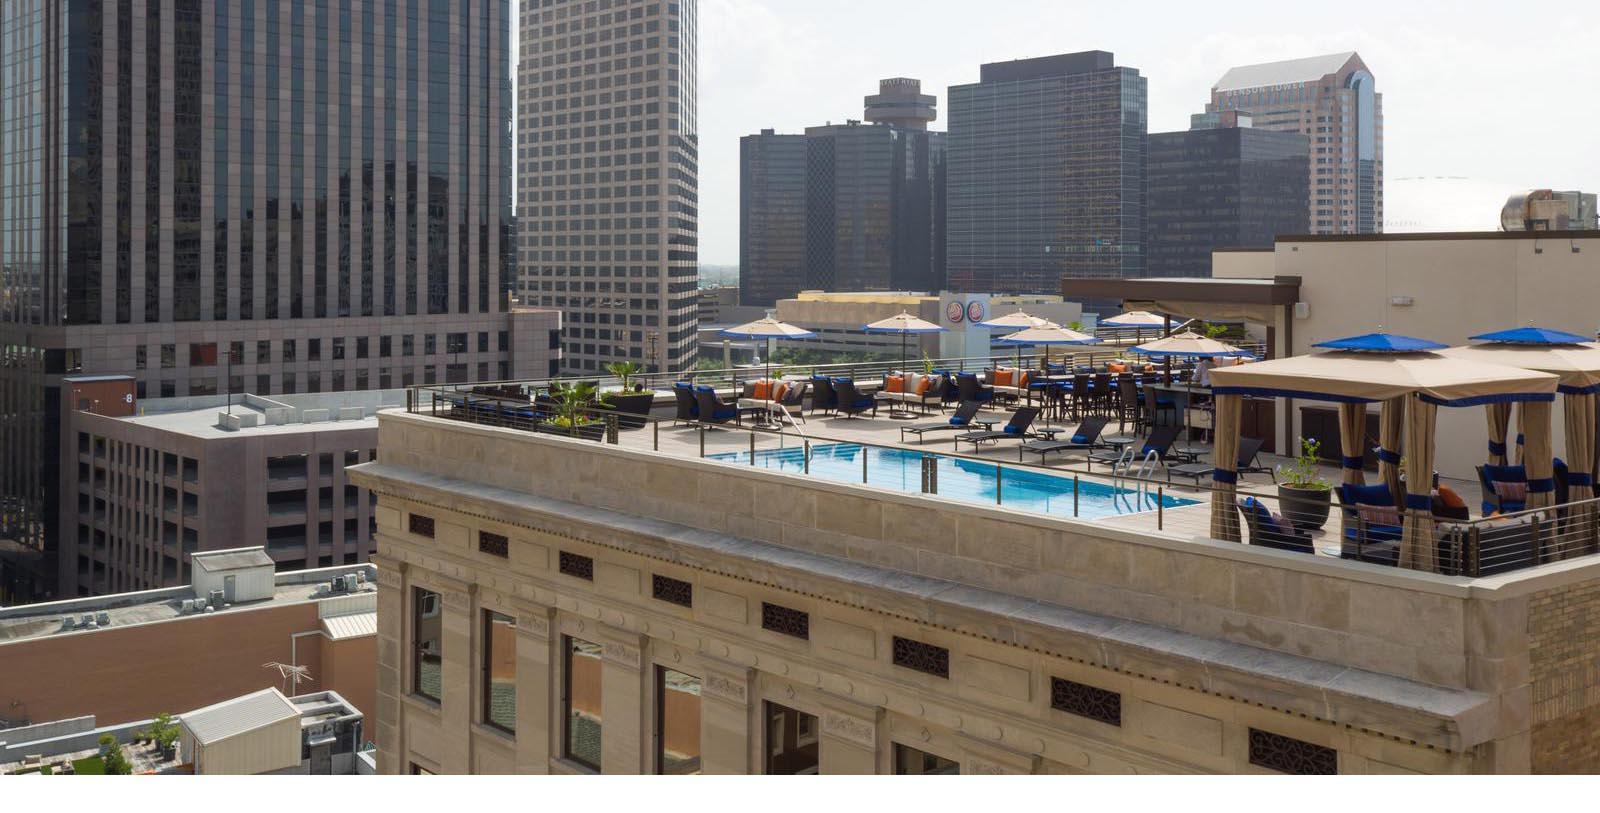 Image of Exterior & Rooftop Pool, NOPSI New Orleans, Louisiana, 1927, Member of Historic Hotels of America, Overview